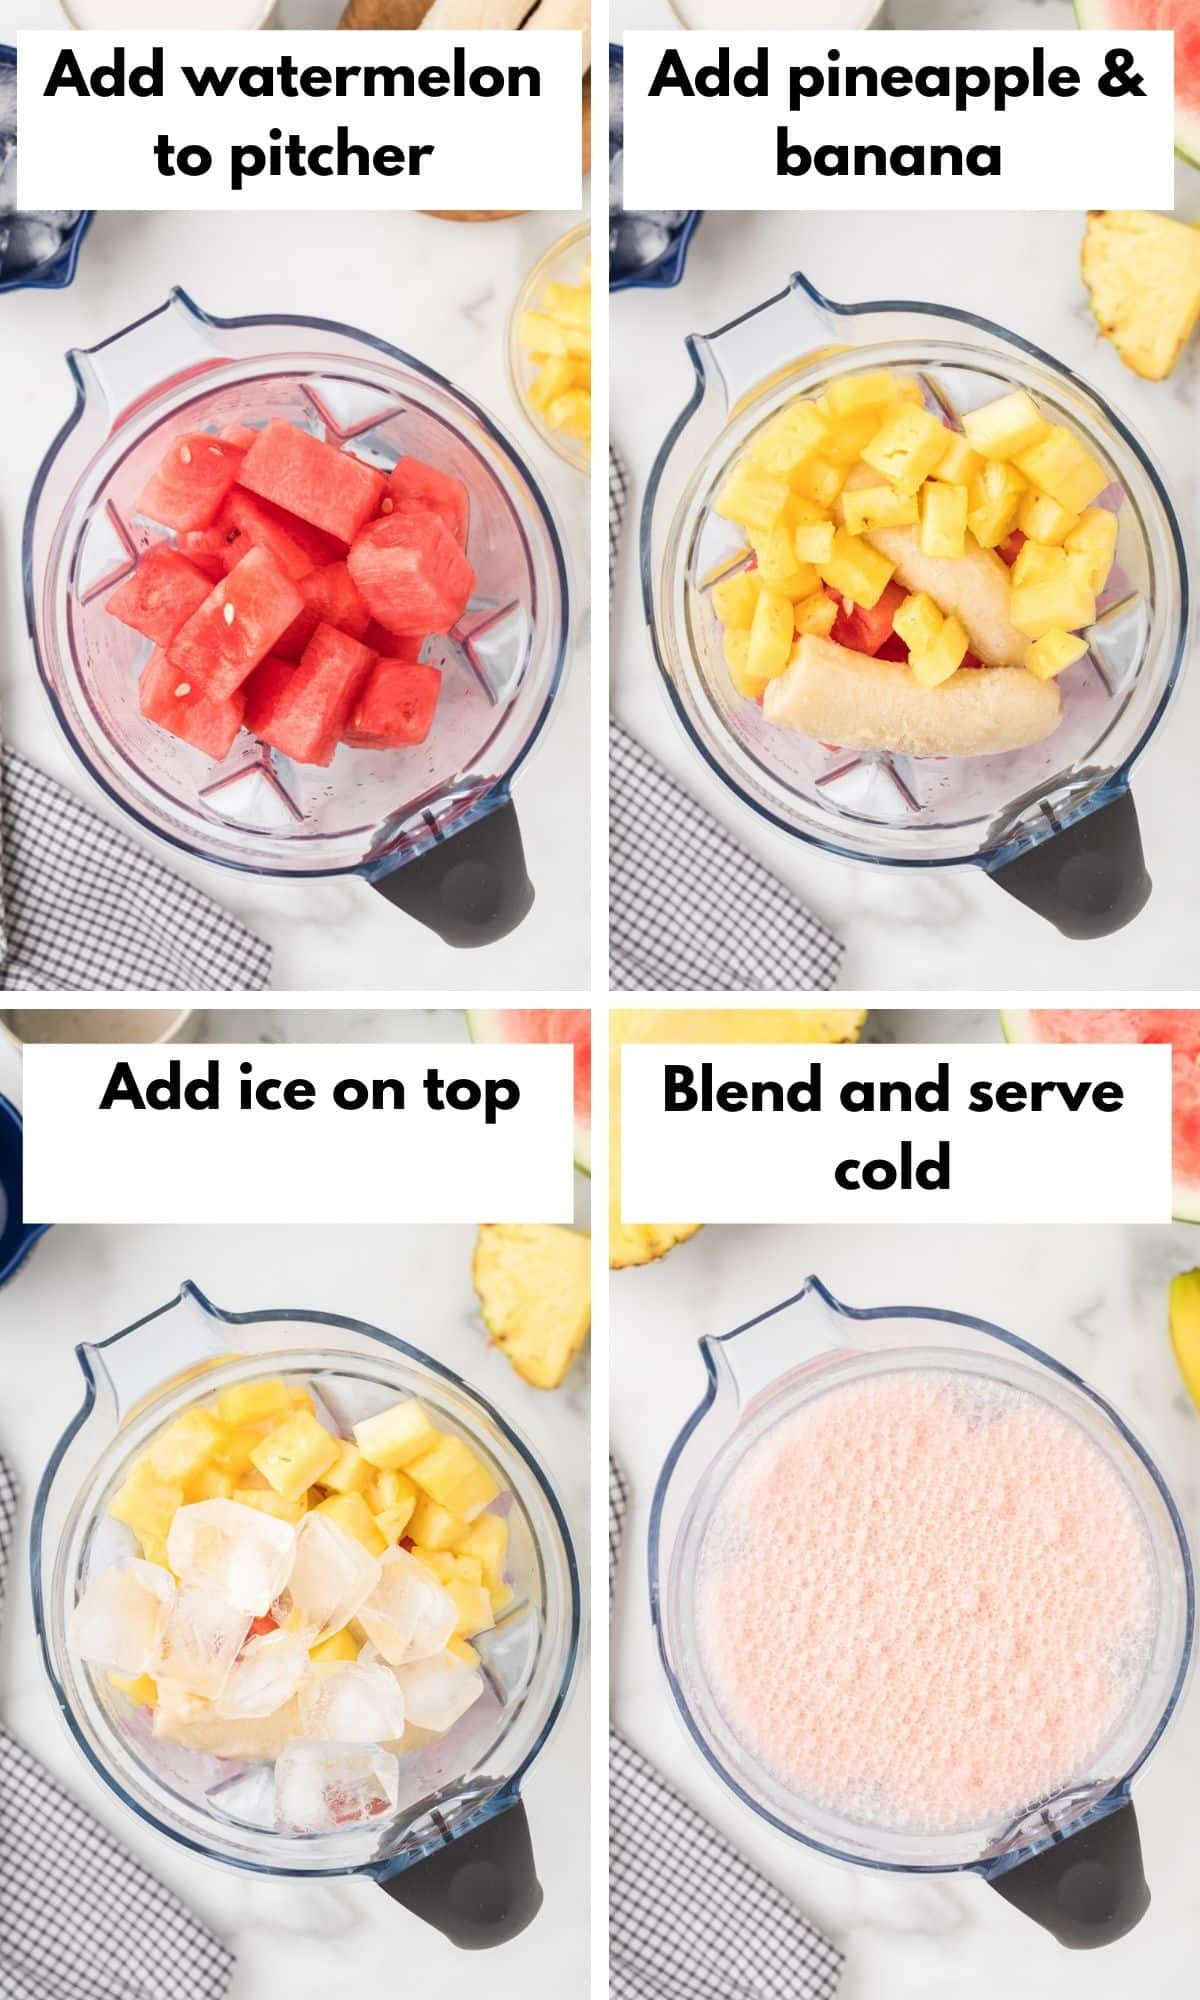 process photos for how to make this watermelon banana smoothie